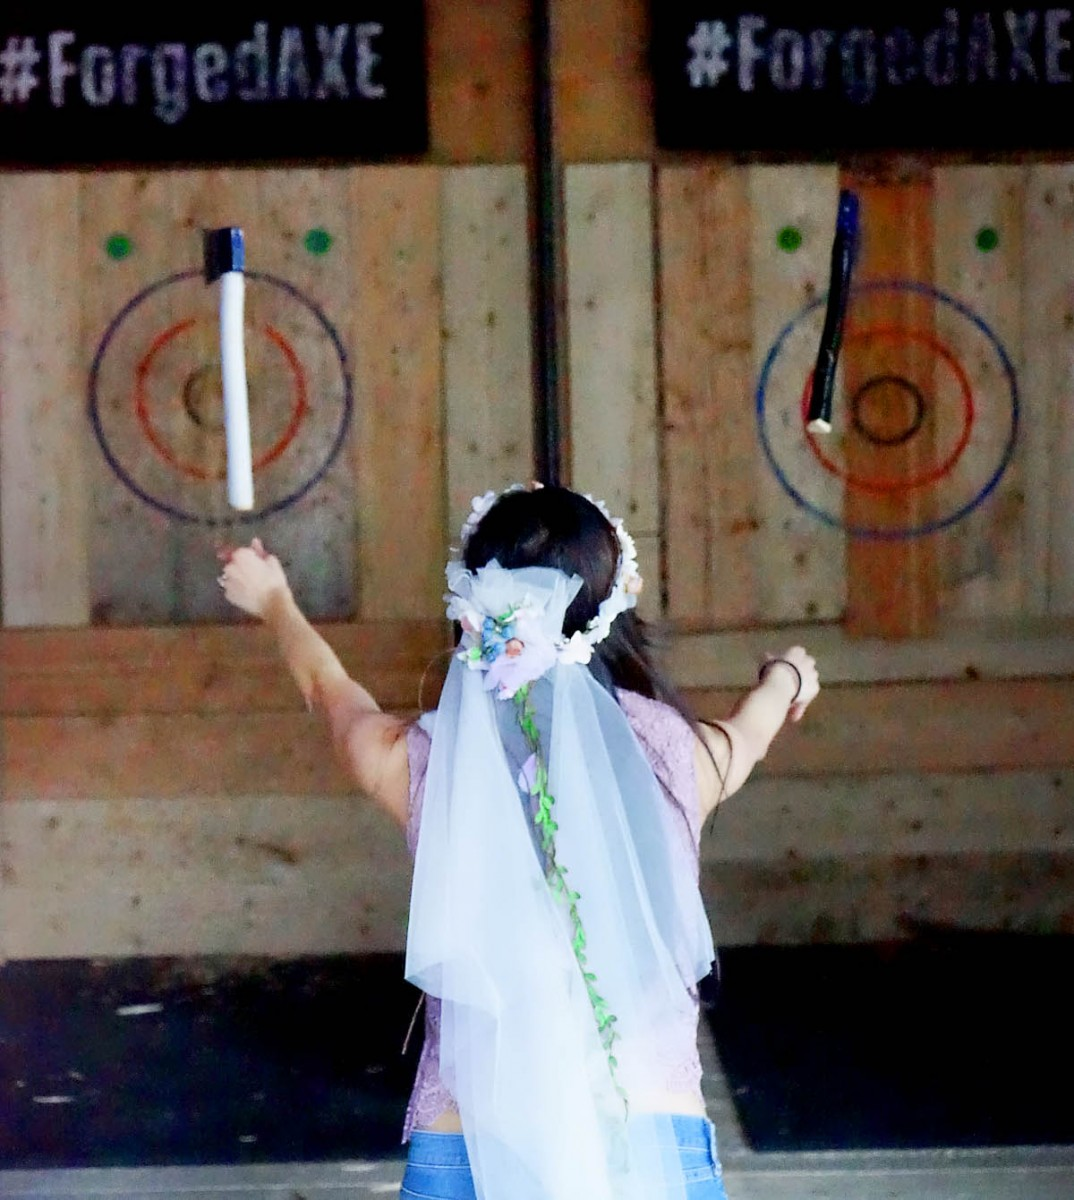 Forged Axe Throwing bride double axe throw